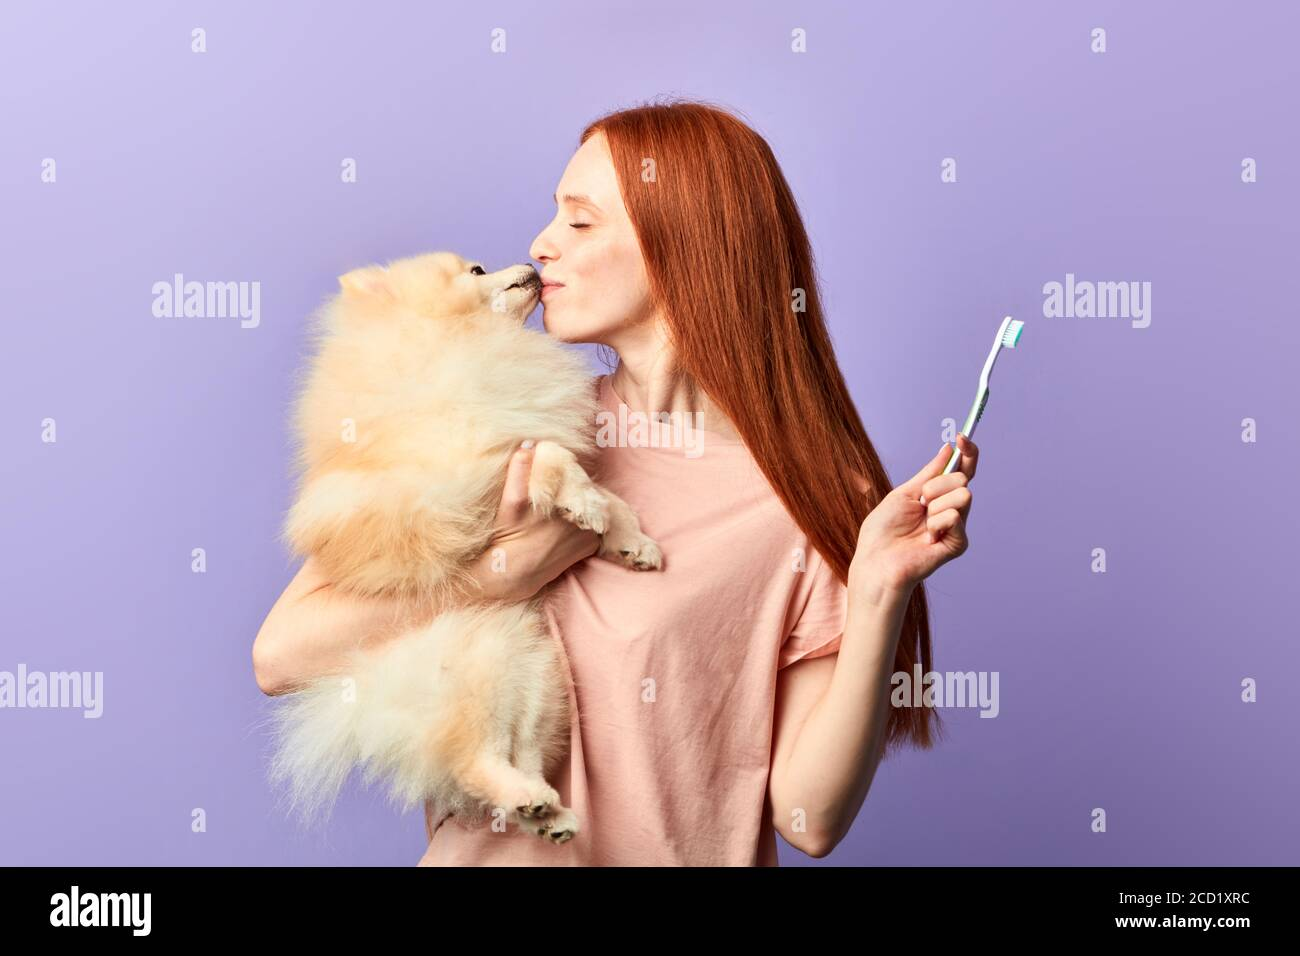 funny pleasant ginger girl kissing with her adorable dog. close up side view photo. isolated blue background, studio shot, lifestyle, free time, spare Stock Photo